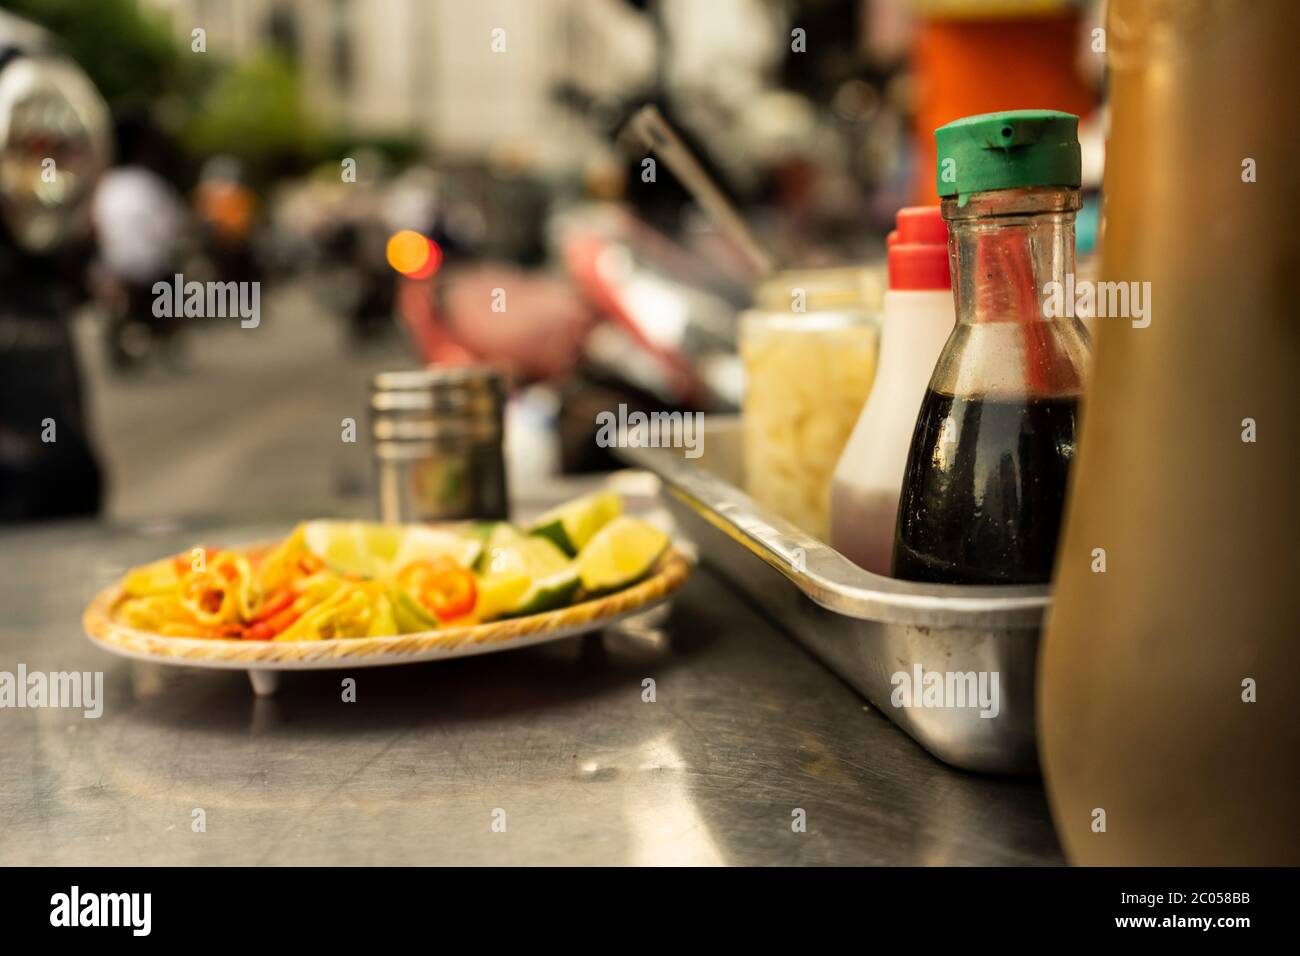 Traditional Vietnamese Noodle Condiment Tray With Dish Of Lemon Slices Jar Of Chili Fish Sauce Soy Sauce Spoons And Chopsticks At Street Food Cart Stock Photo Alamy